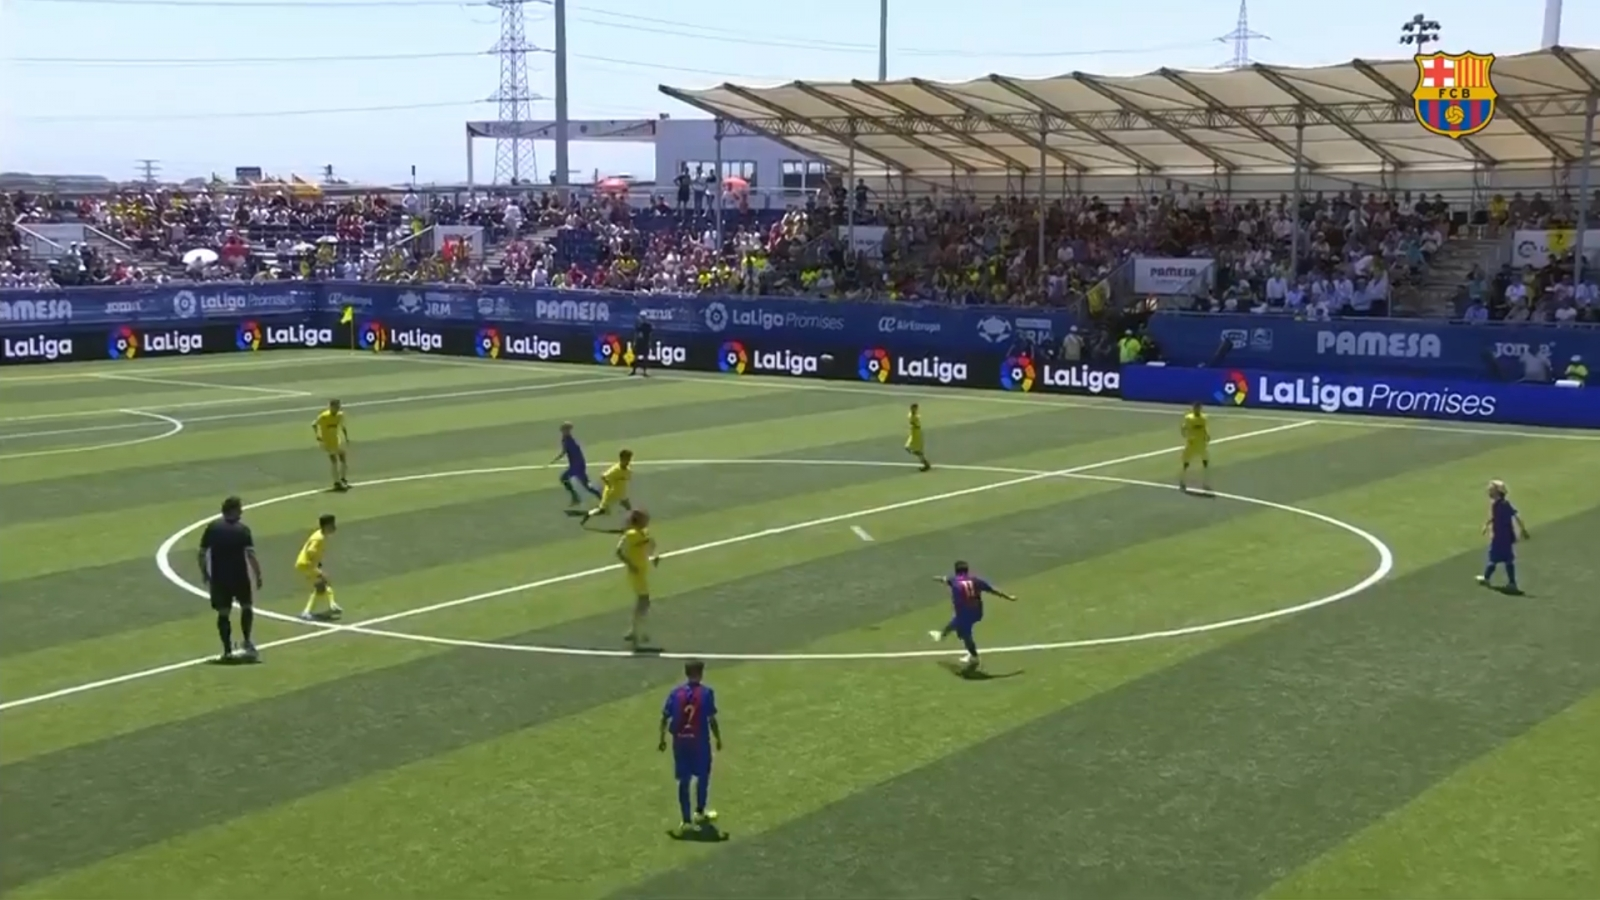 watch-barcelona-youngster-score-an-outrageous-wonder-goal